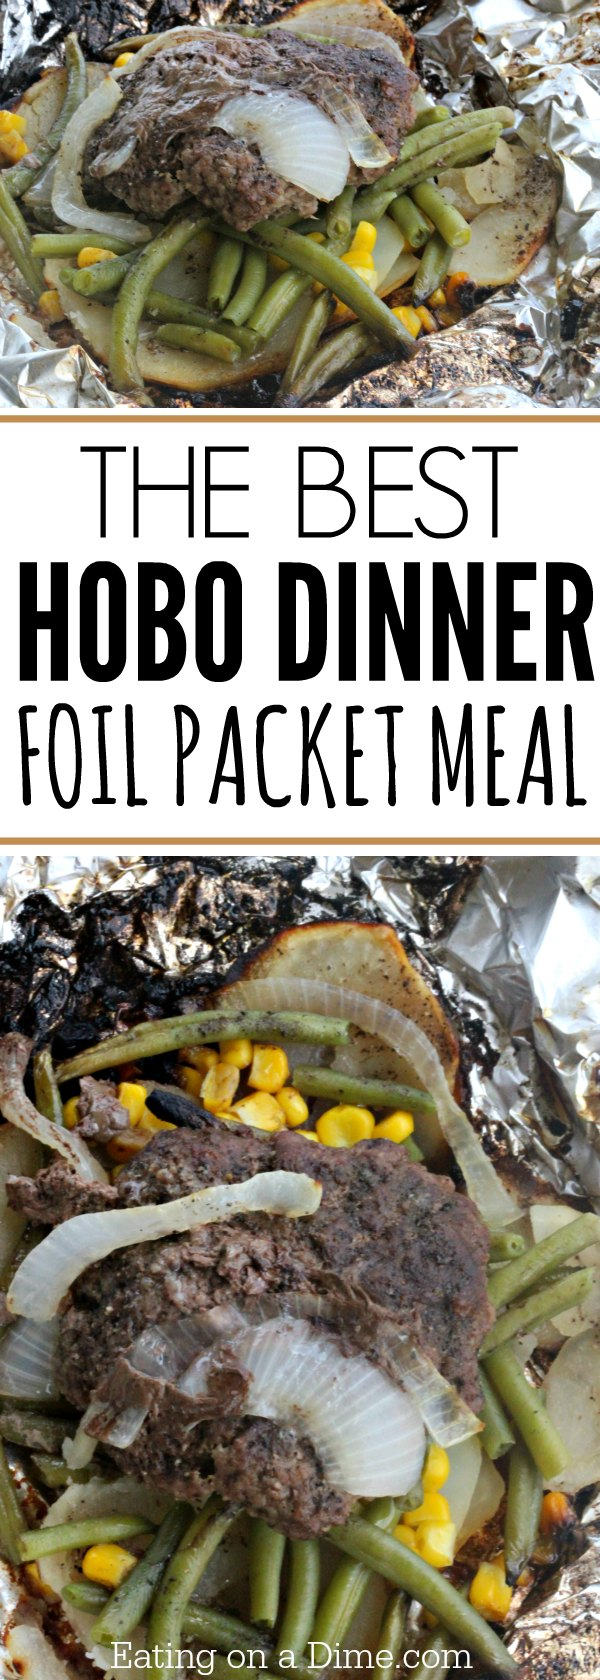 Hobo Dinner Foil Packet Meal The Best Hobo Dinner Recipe